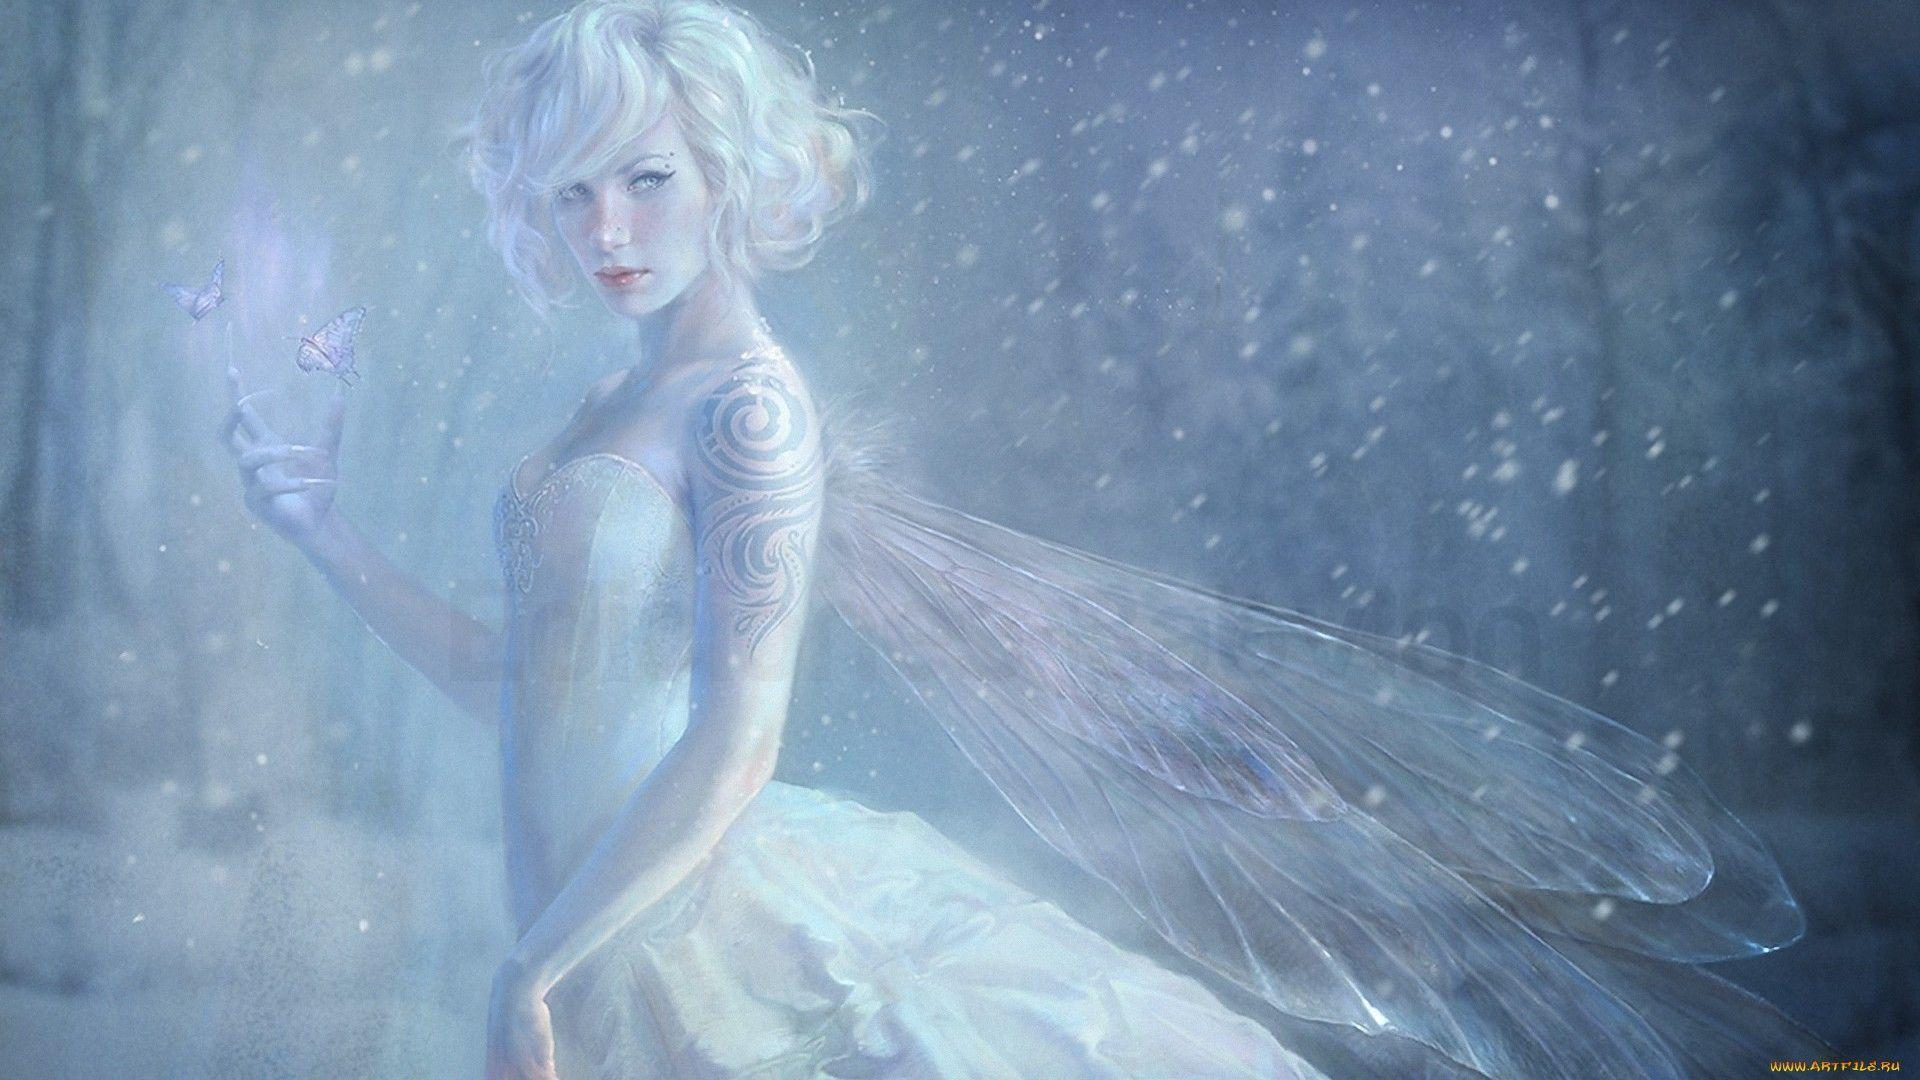 fairies movies images - photo #25